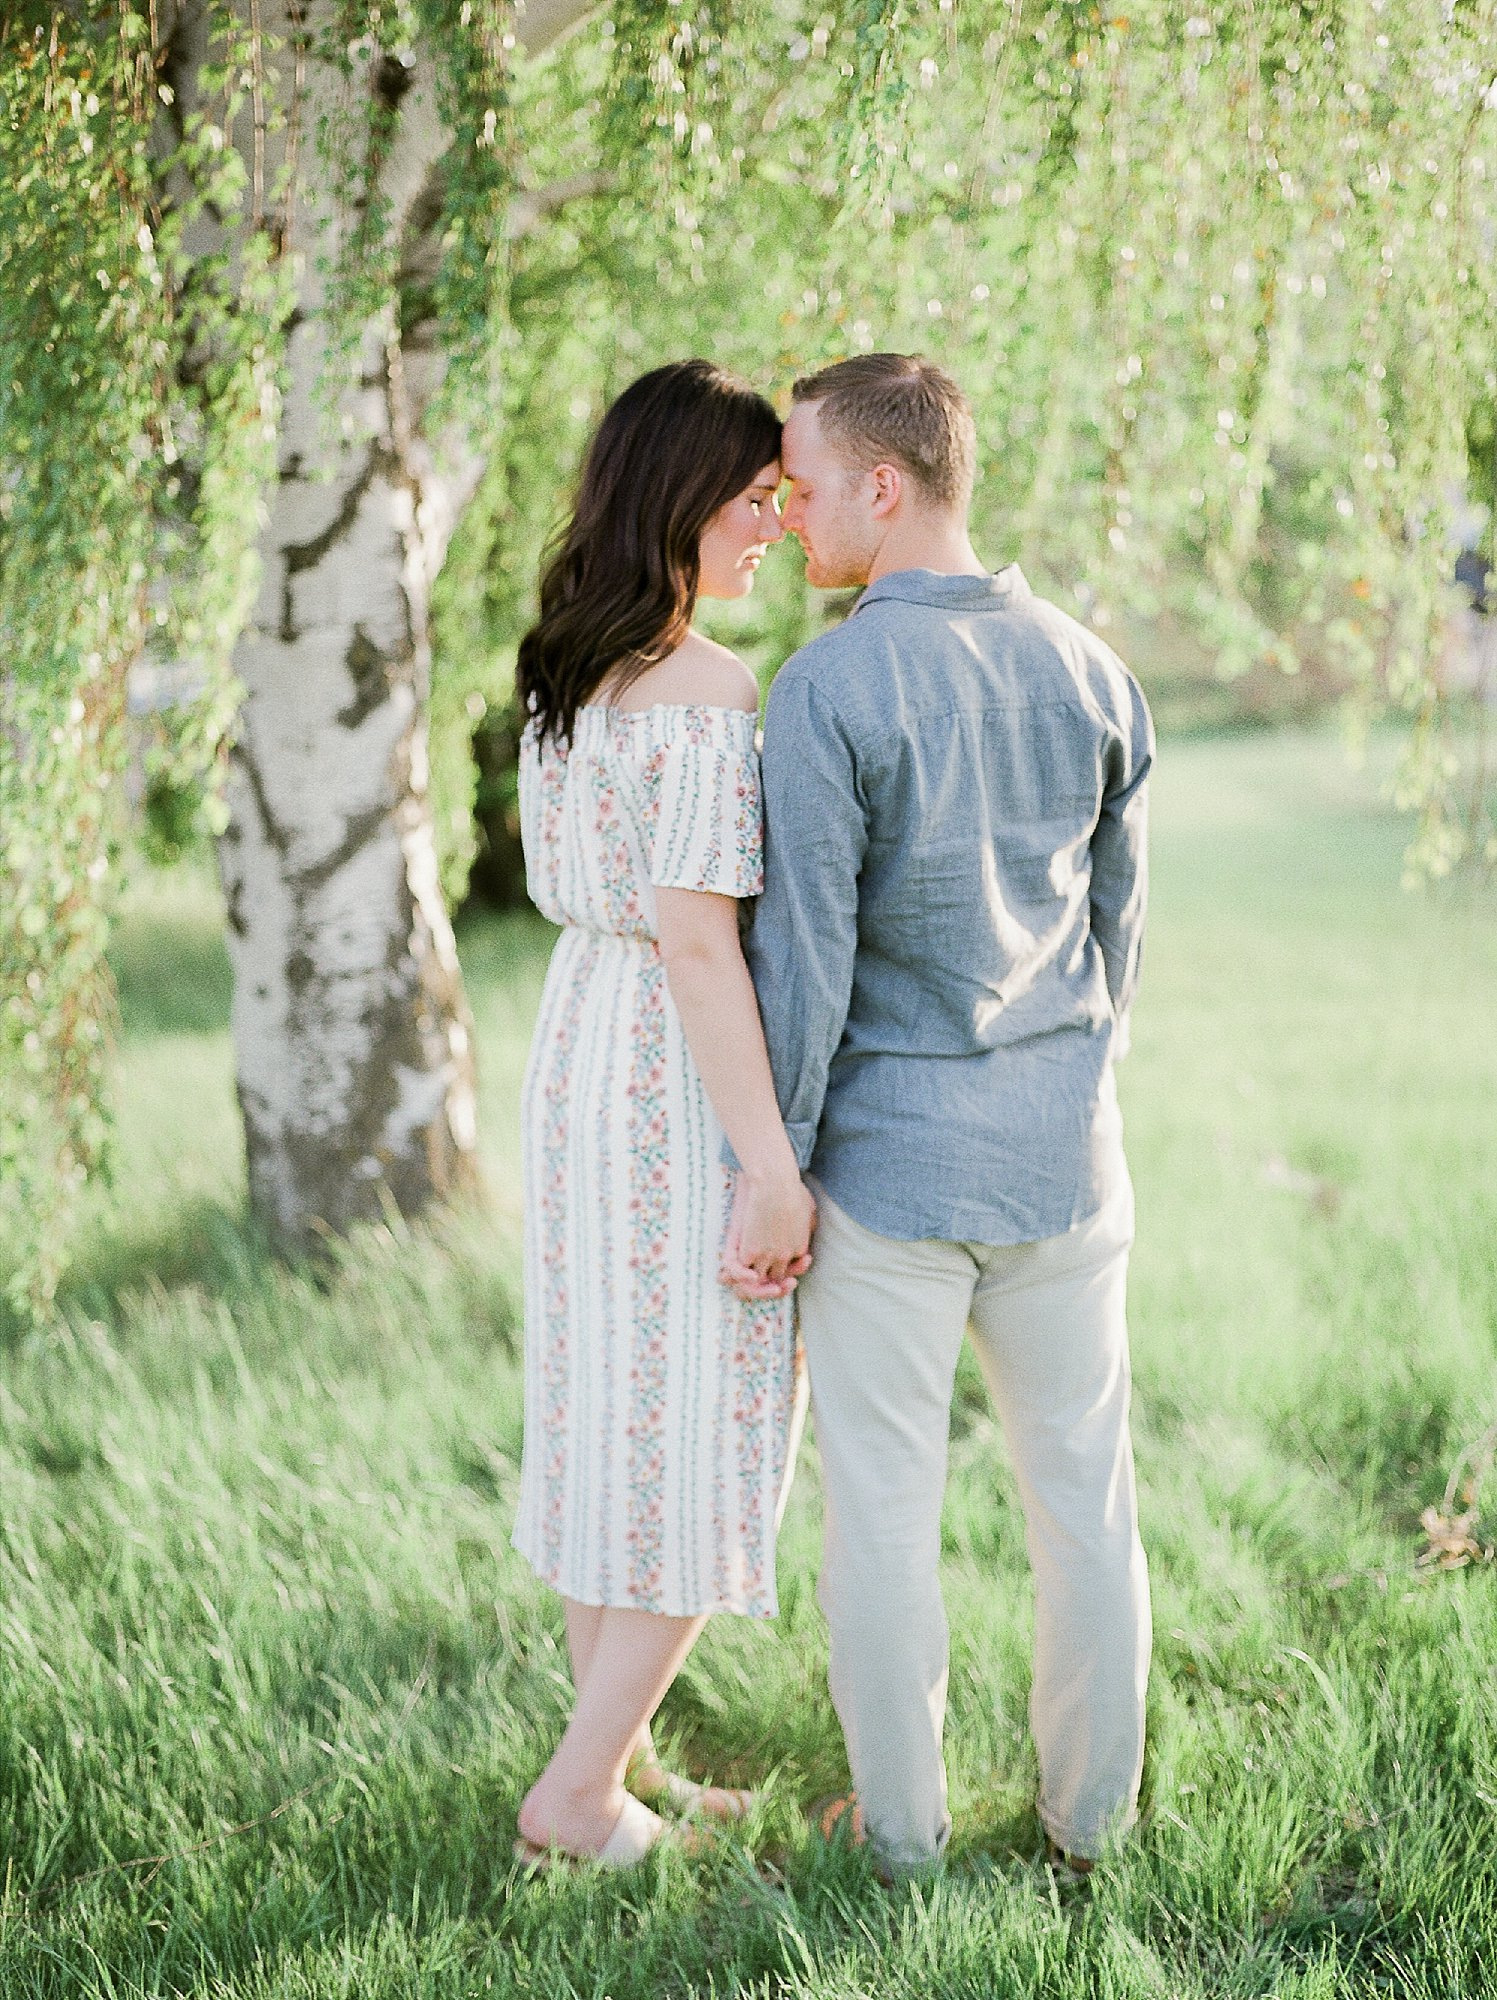 winnipeg wedding vendors, winnipeg wedding venues, engagement session at golden hour sunset, calgary wedding vendors, romantic wedding photos